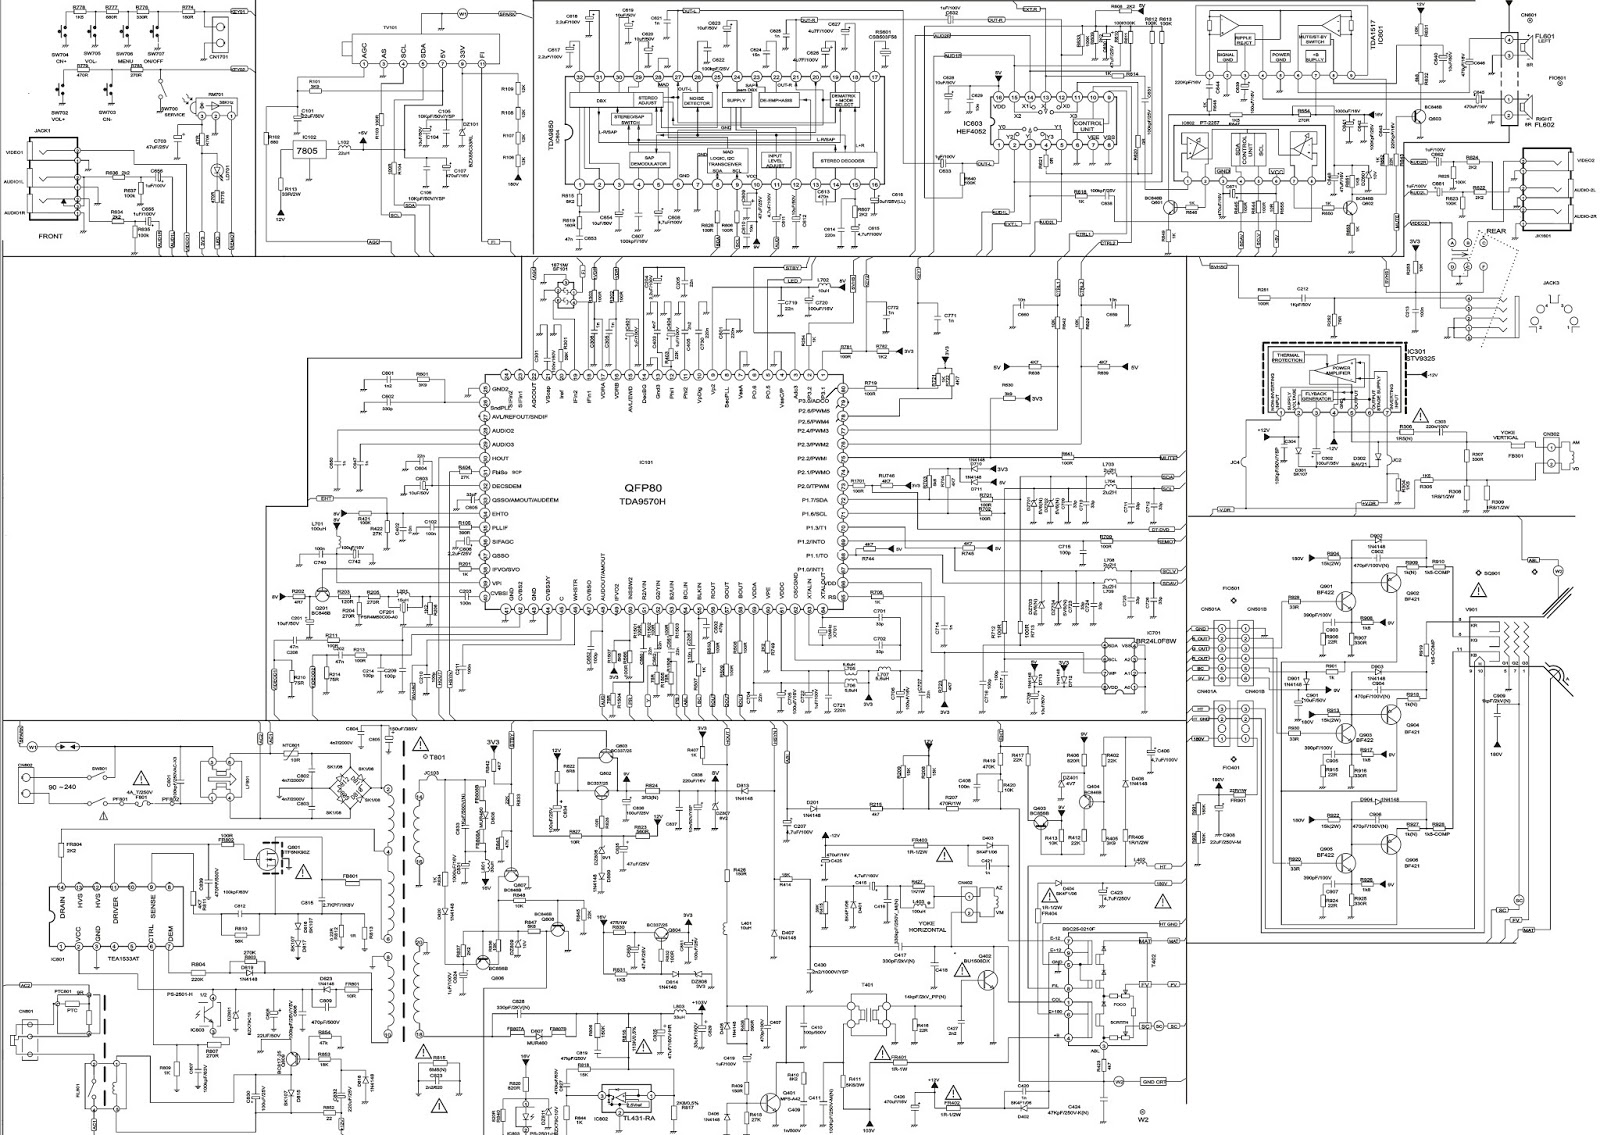 hight resolution of crt tv schematic diagram wiring diagram datcrt schematic diagram wiring diagram dat china crt tv schematic